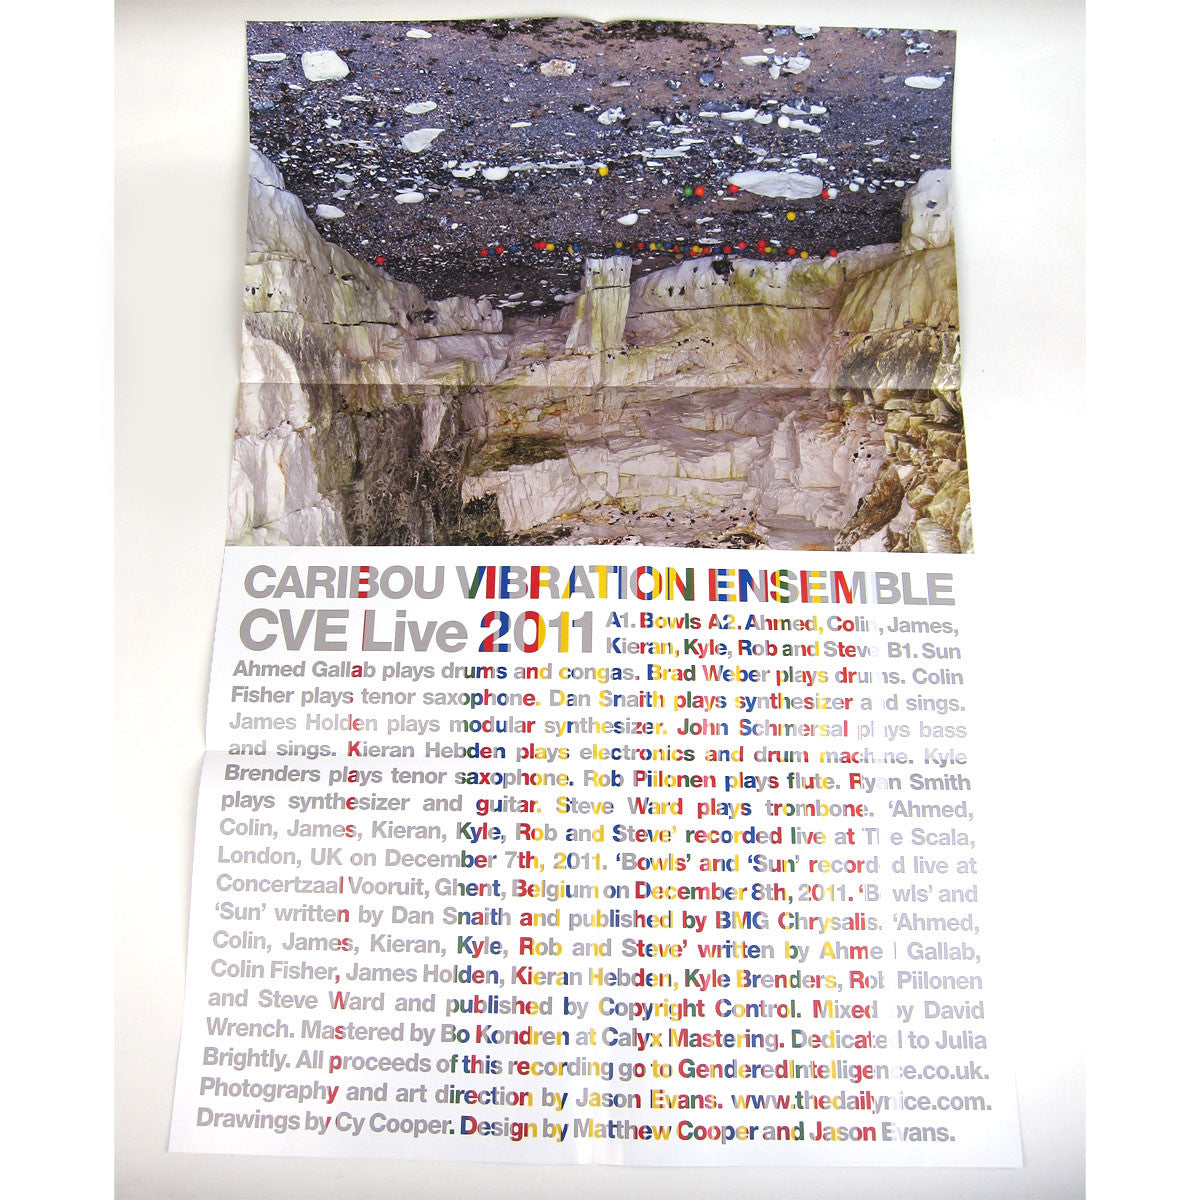 Caribou Vibration Ensemble: CVE Live 2011 (Four Tet, James Holden) Vinyl LP detail 2